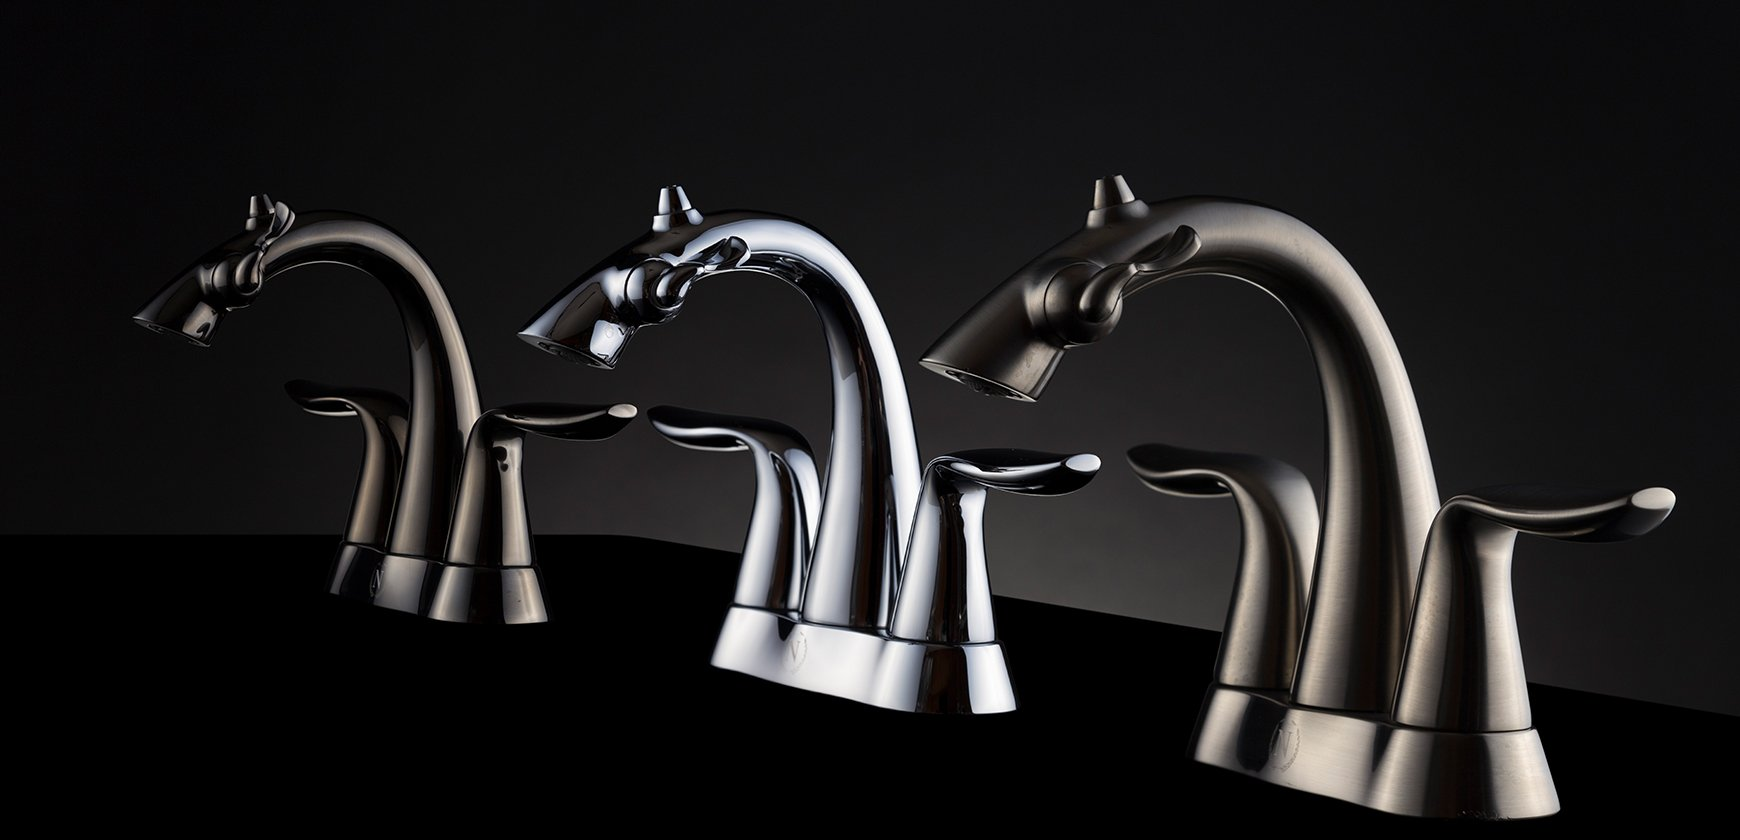 Group photo of Nasoni Centerset Fountain Faucets on Black Background